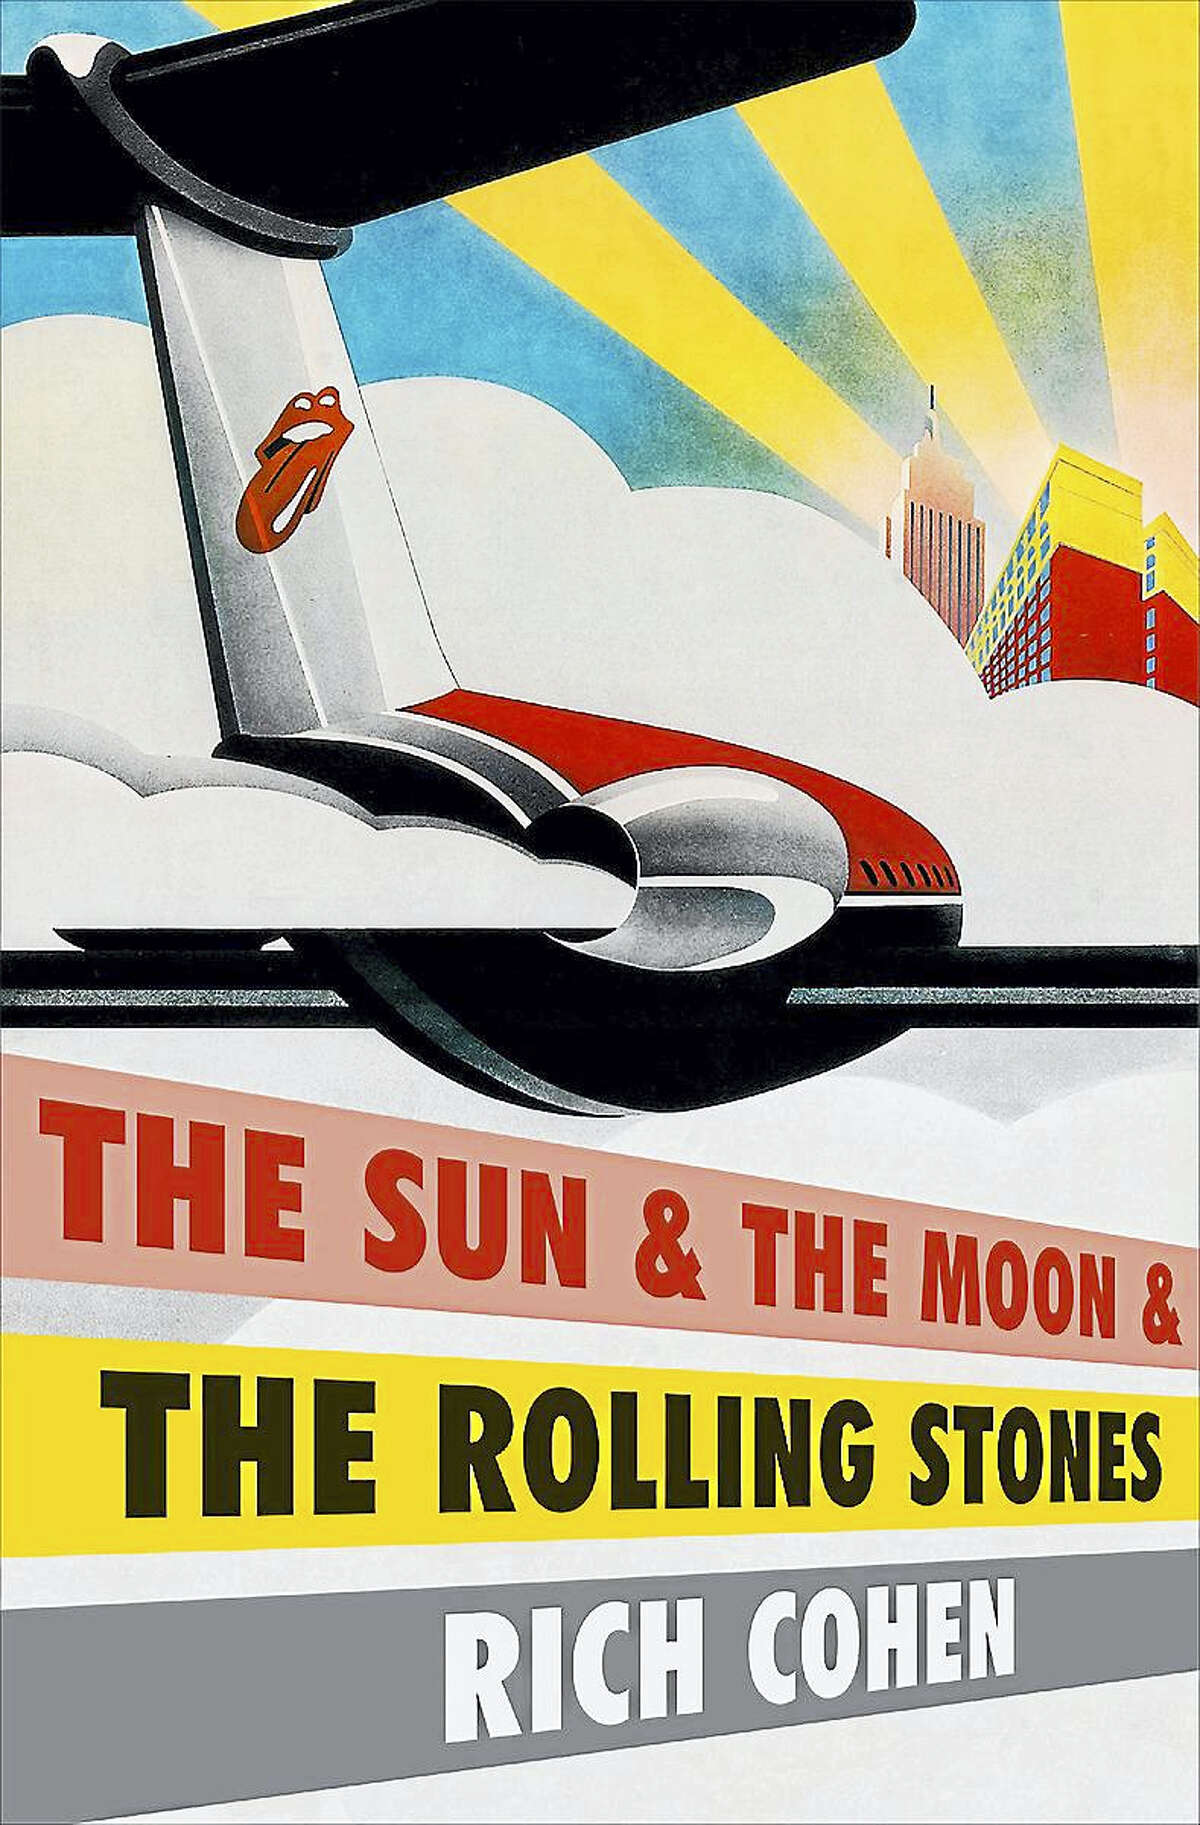 Contributed photo Cohen's book, The Sun & the Moon & the Rolling Stones, will be the subject of a talk by the author at the Gunn Memorial Library in Washington.